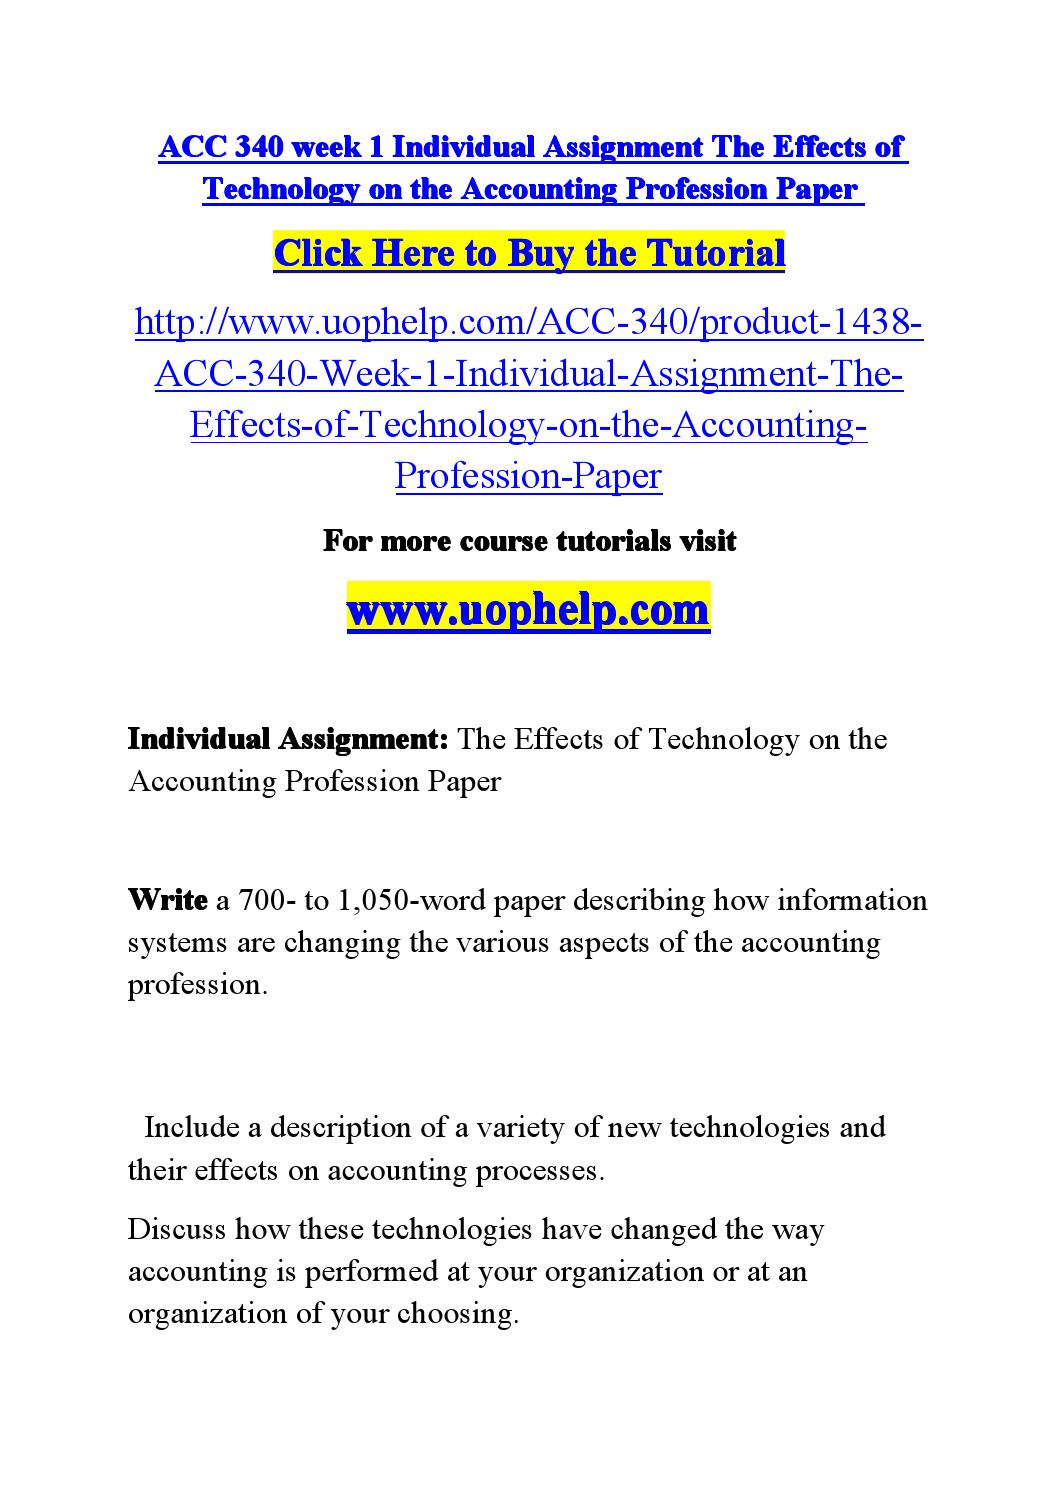 effects of technology on the accounting The impact of computer technology on accounting system and its effect on employment, largest undergraduate projects repository, research works and materials download undergraduate projects topics and materials accounting, economics, education.